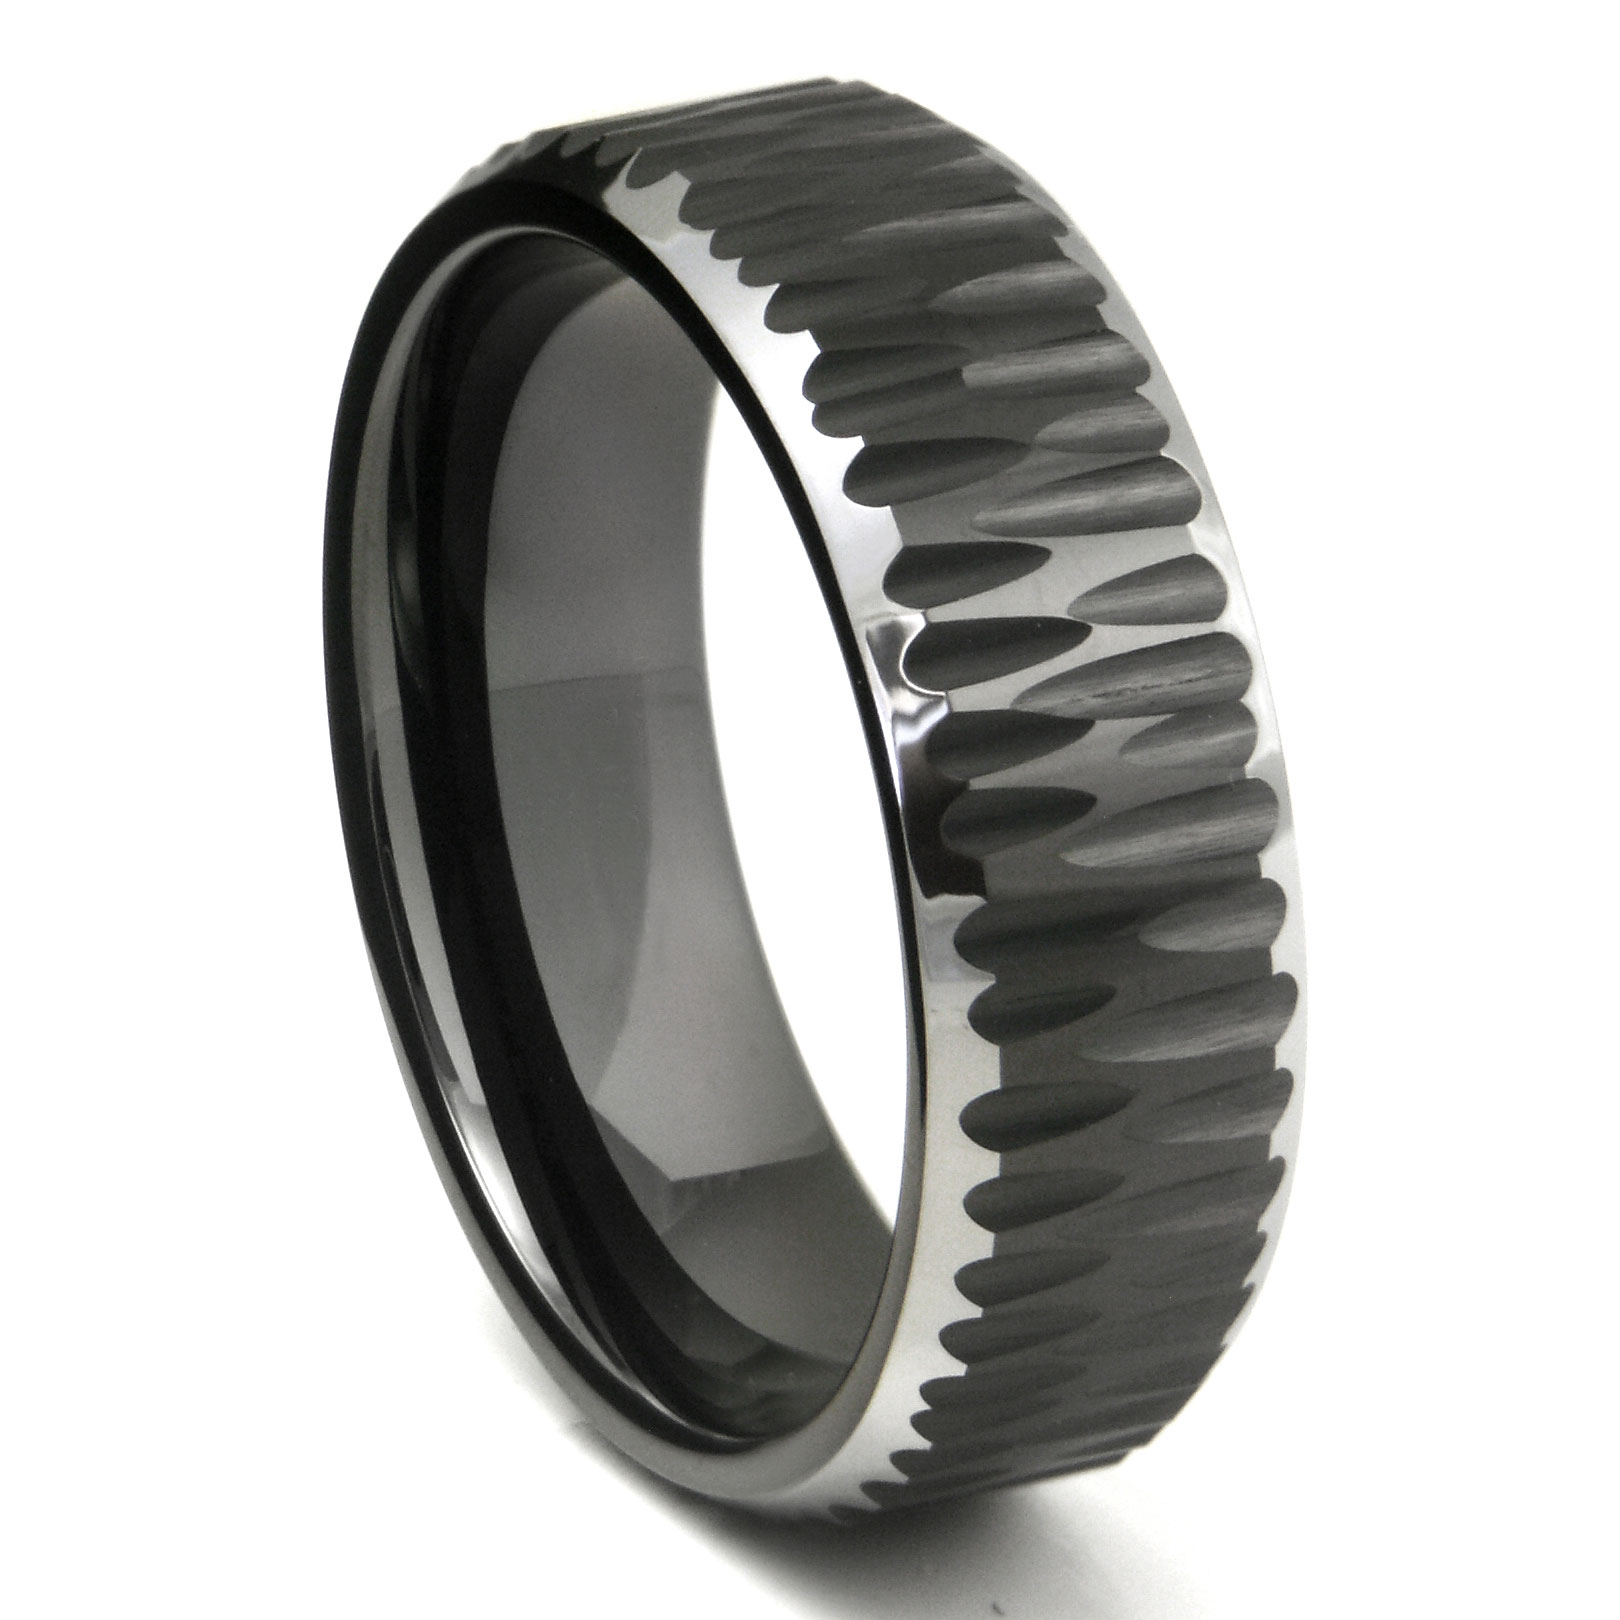 rings nature fit inlay tungsten com king will finish band comfort high dp black amazon mens wedding polished ring carbide wood